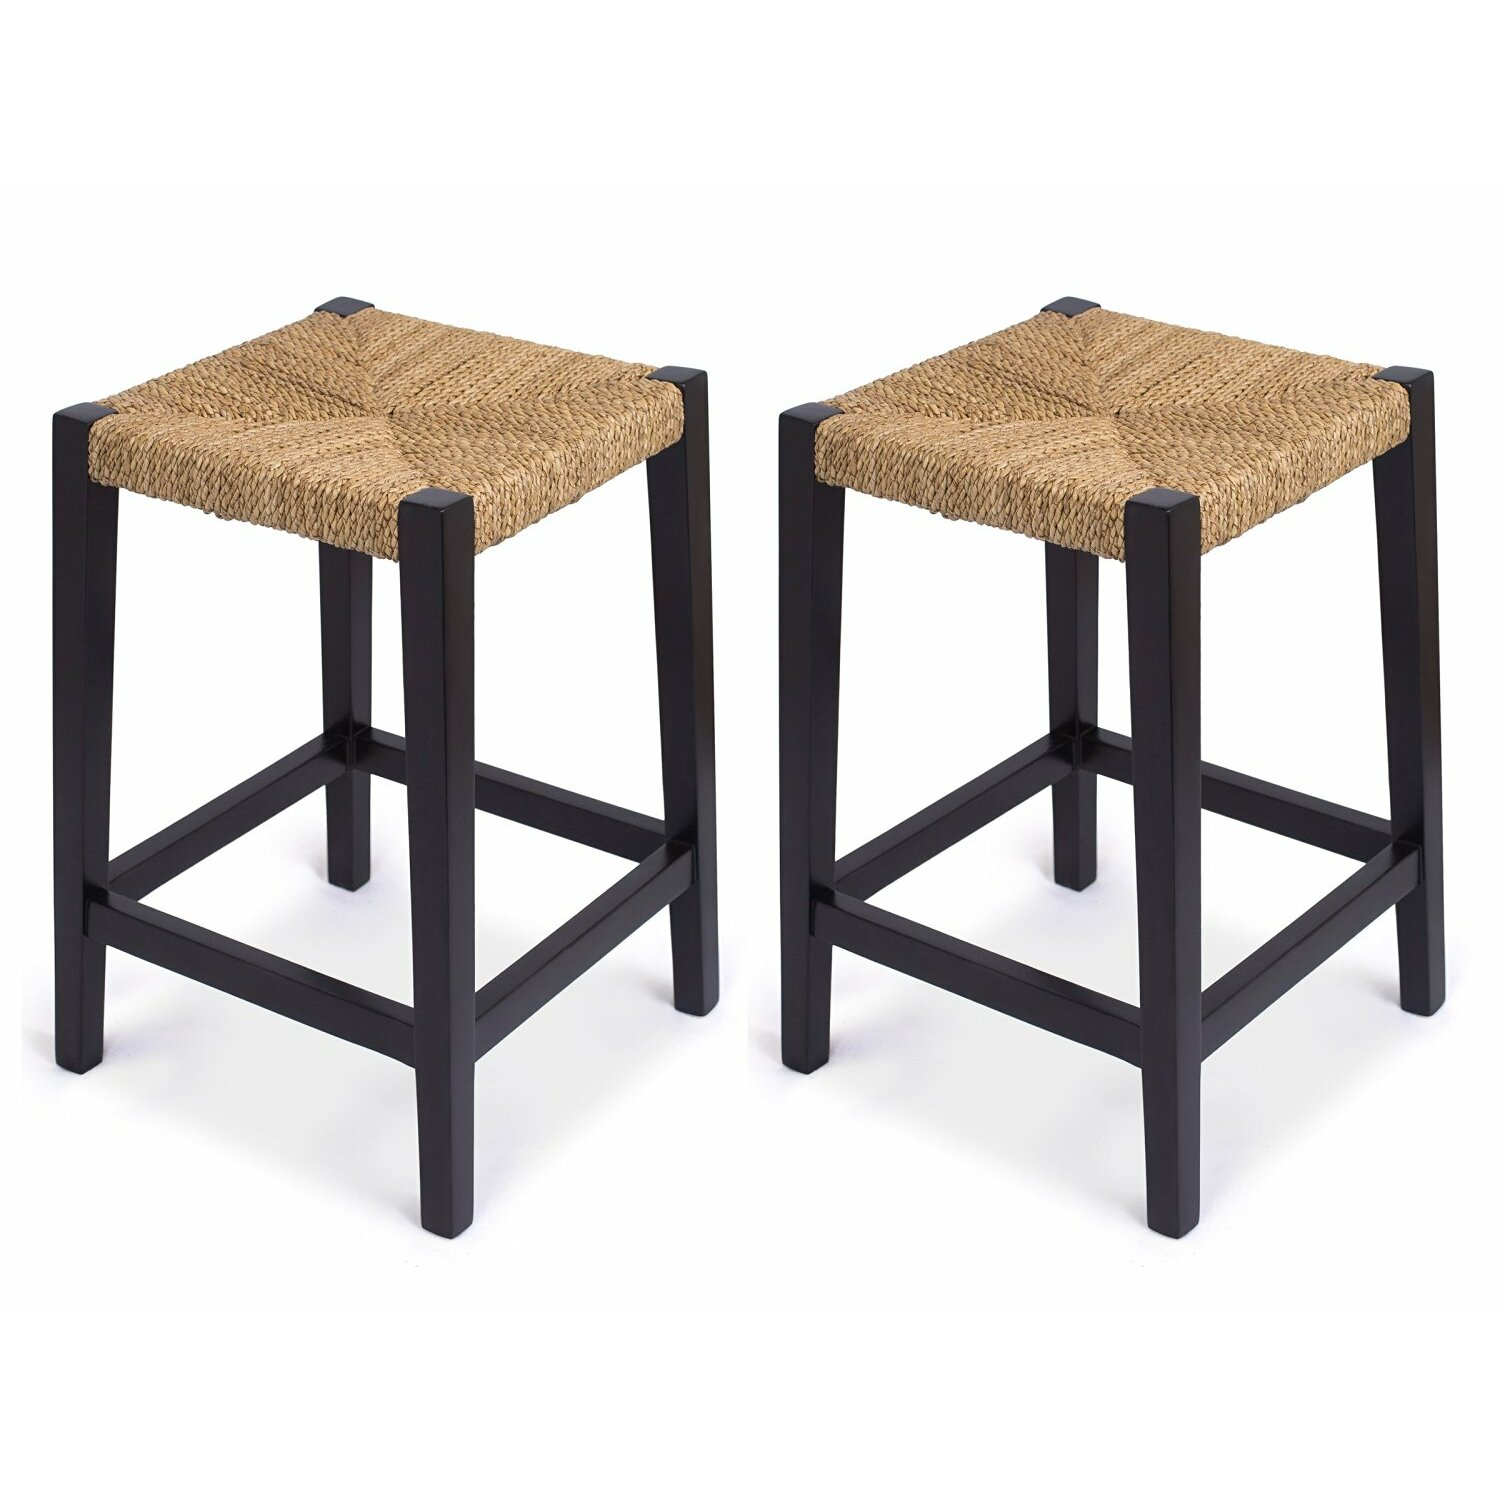 Birdrock home rush weave 24 counter height bar stool for Counter height bar stools